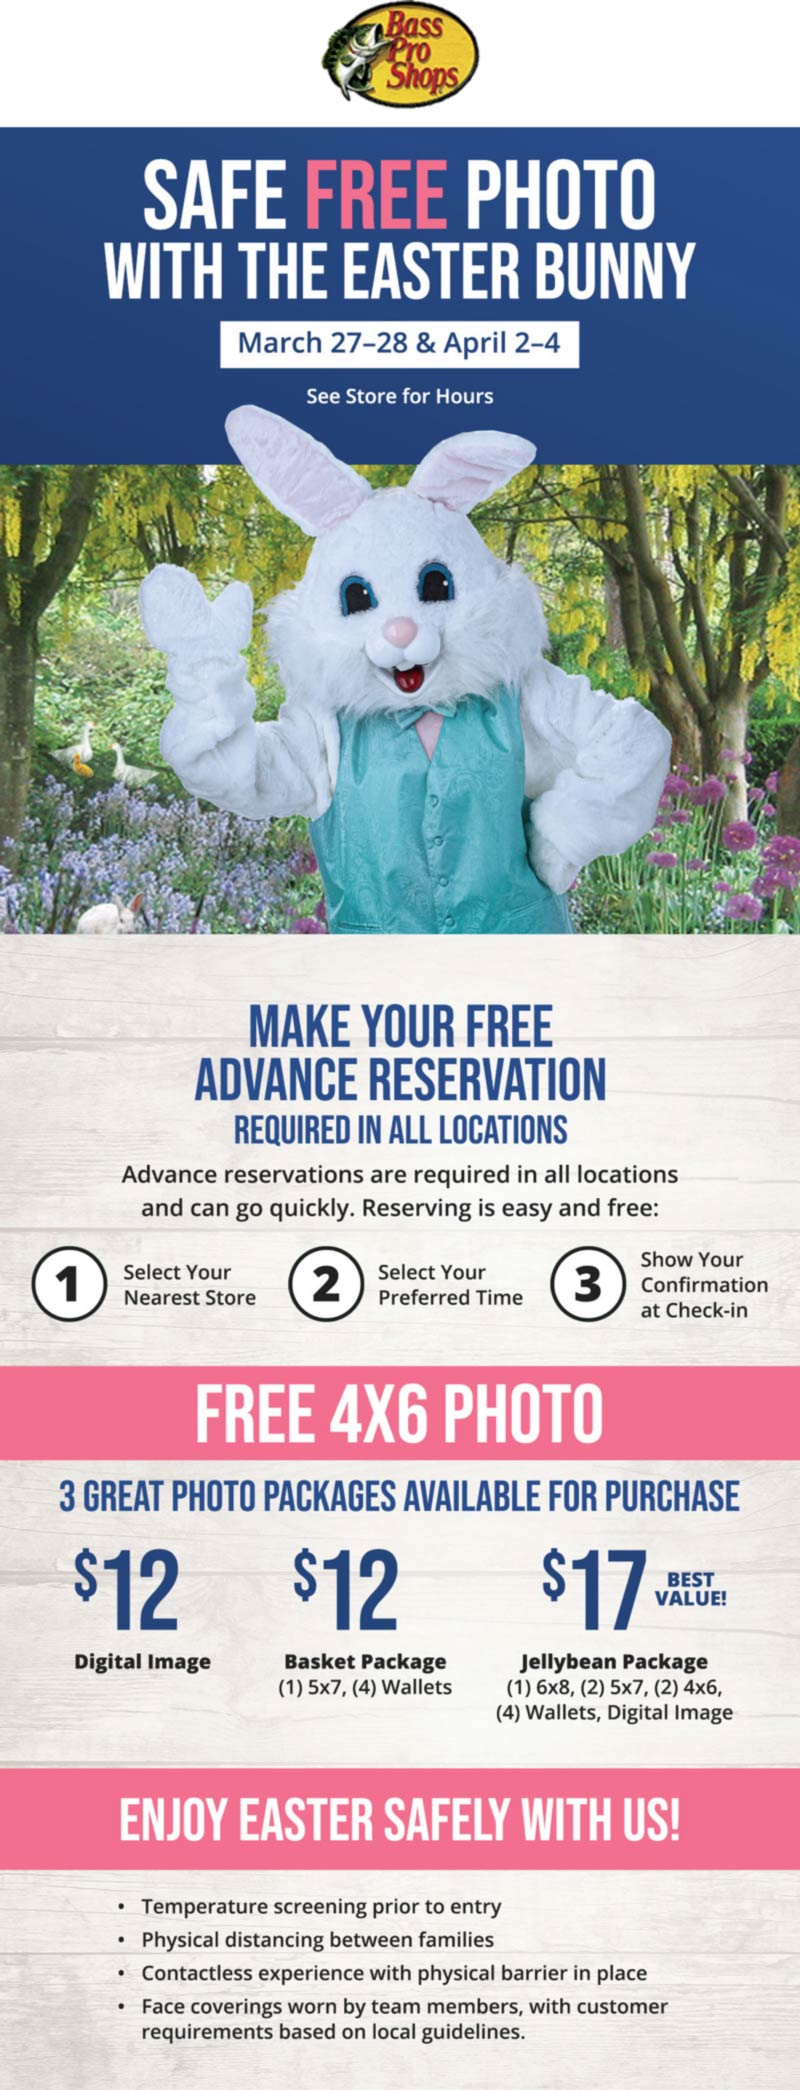 Bass Pro Shops stores Coupon  Free 4x6 photo with the Easter bunny at Bass Pro Shops #bassproshops